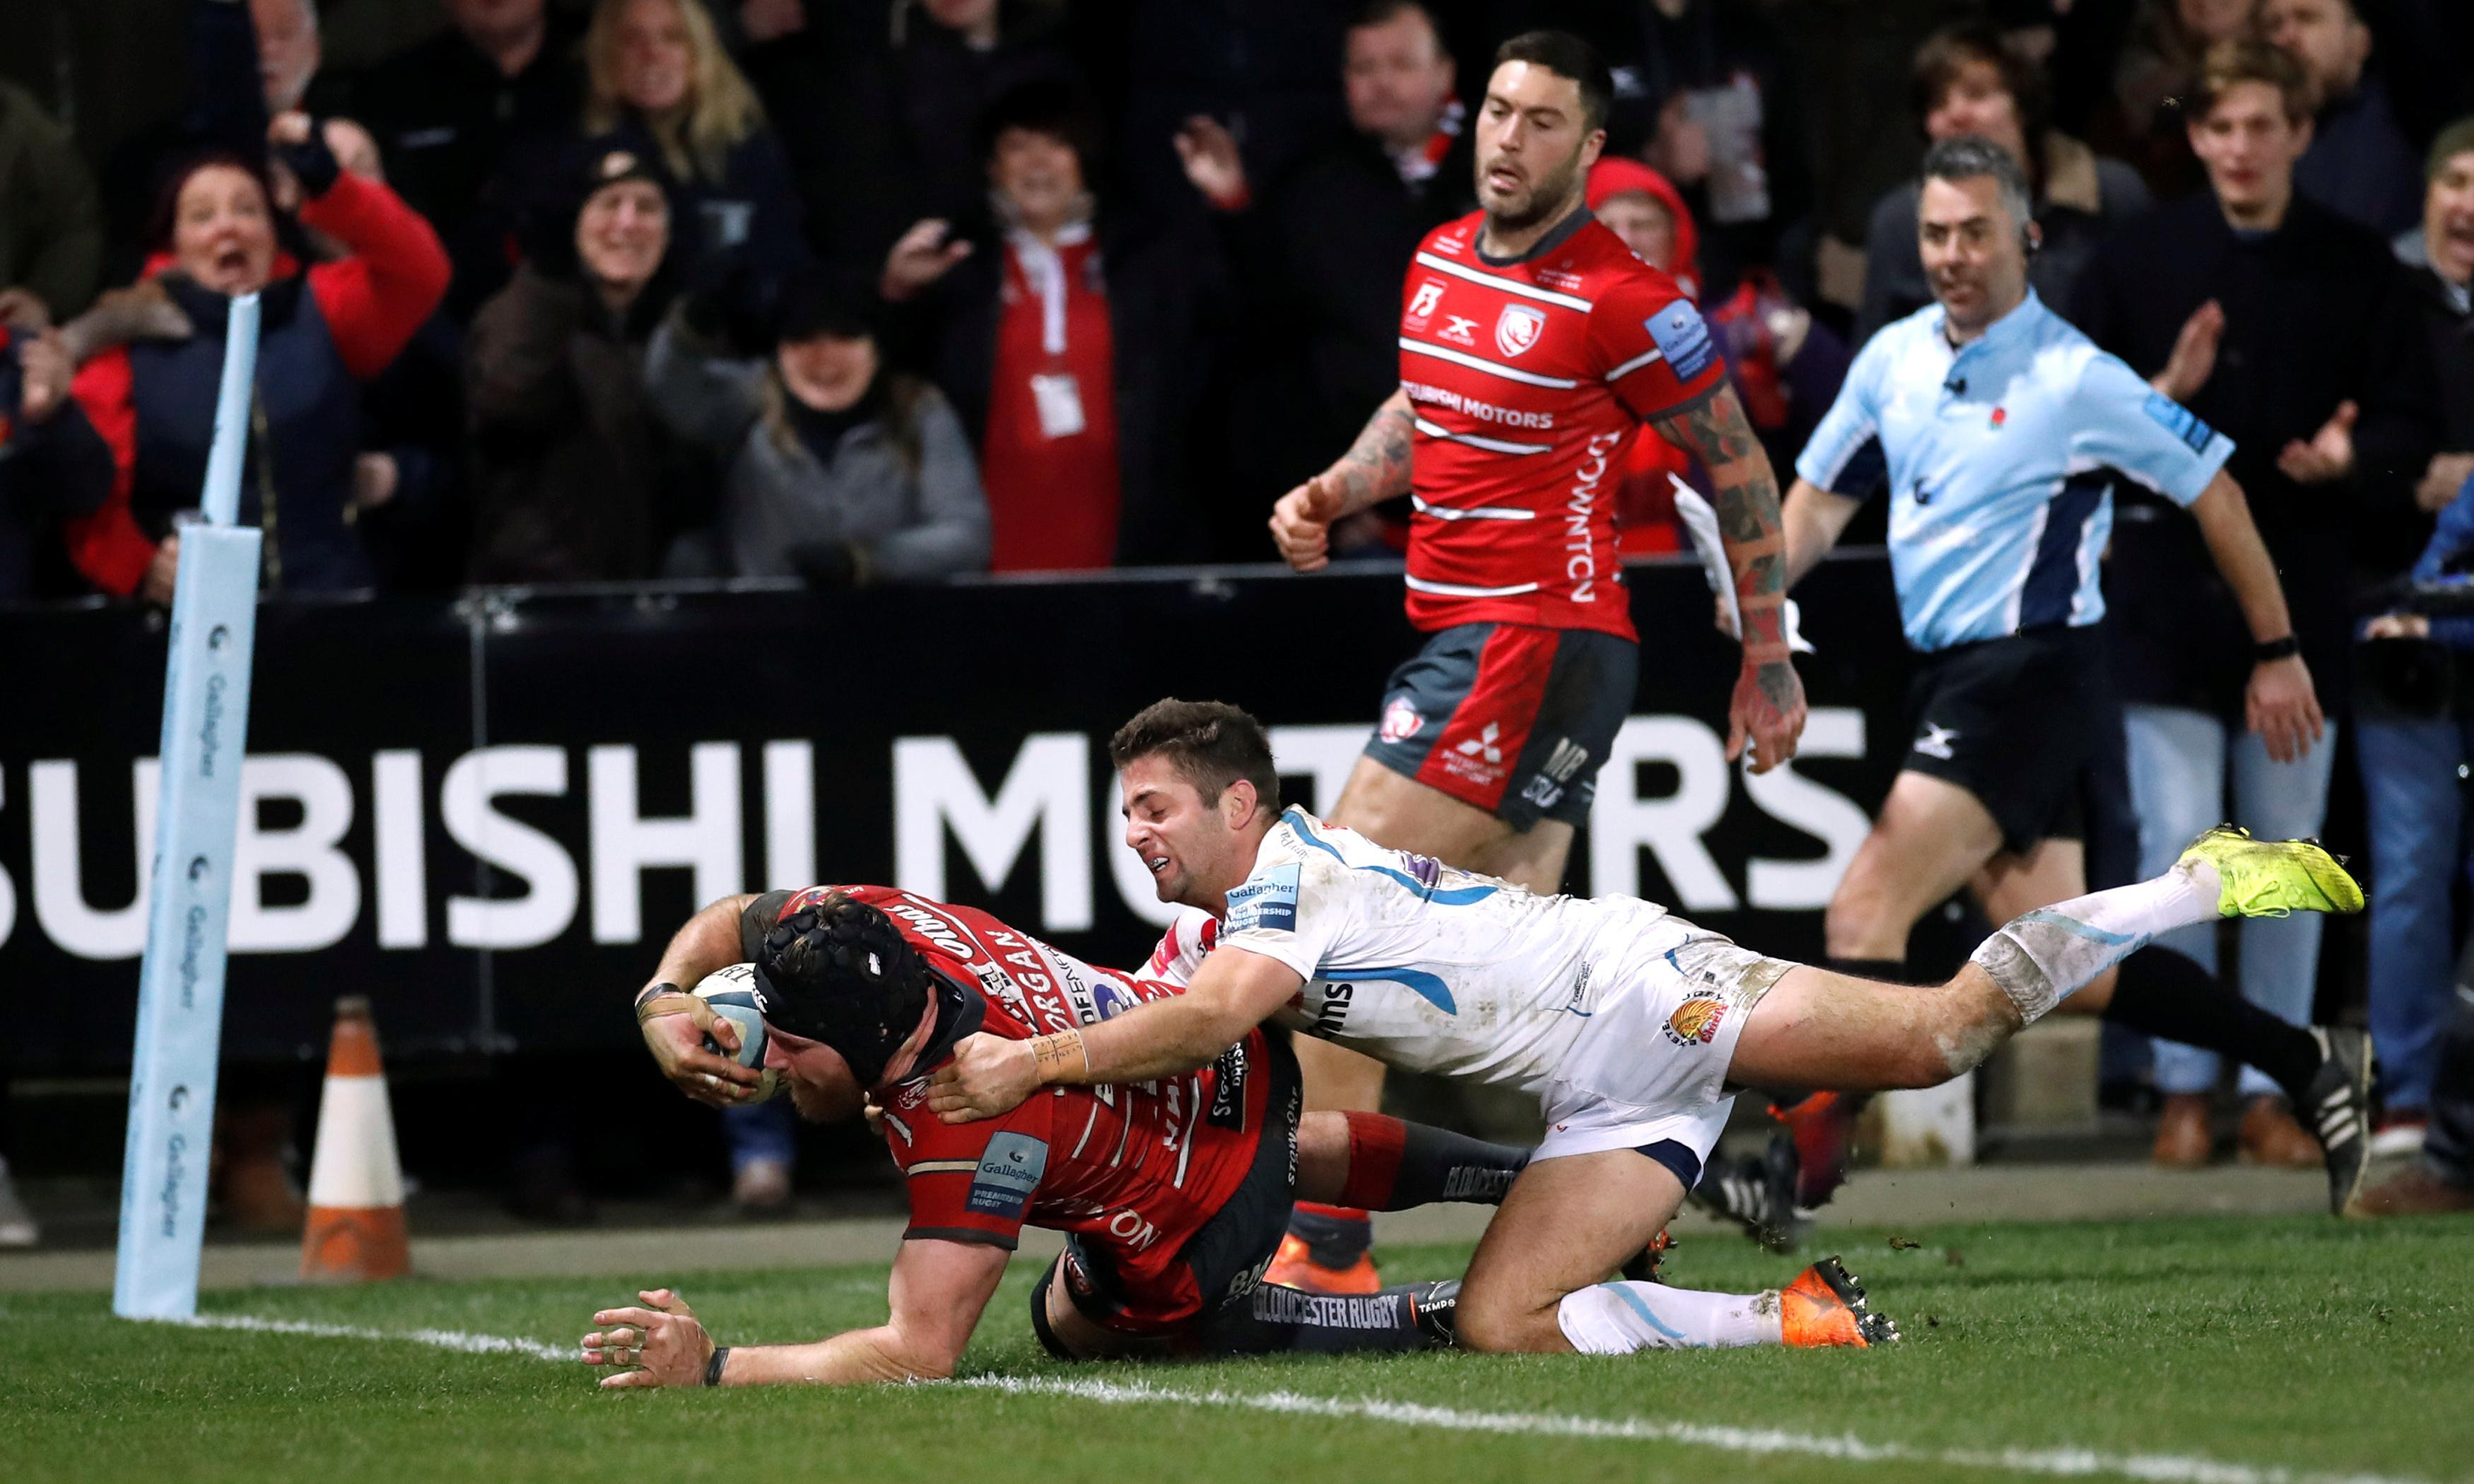 Ben Morgan's late try gives Gloucester space to see off Exeter Chiefs